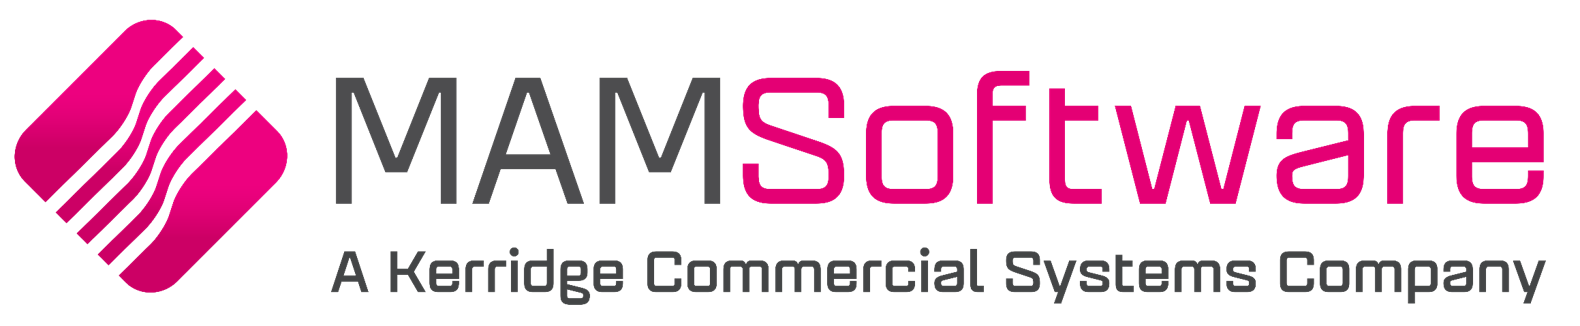 MAM Software UK